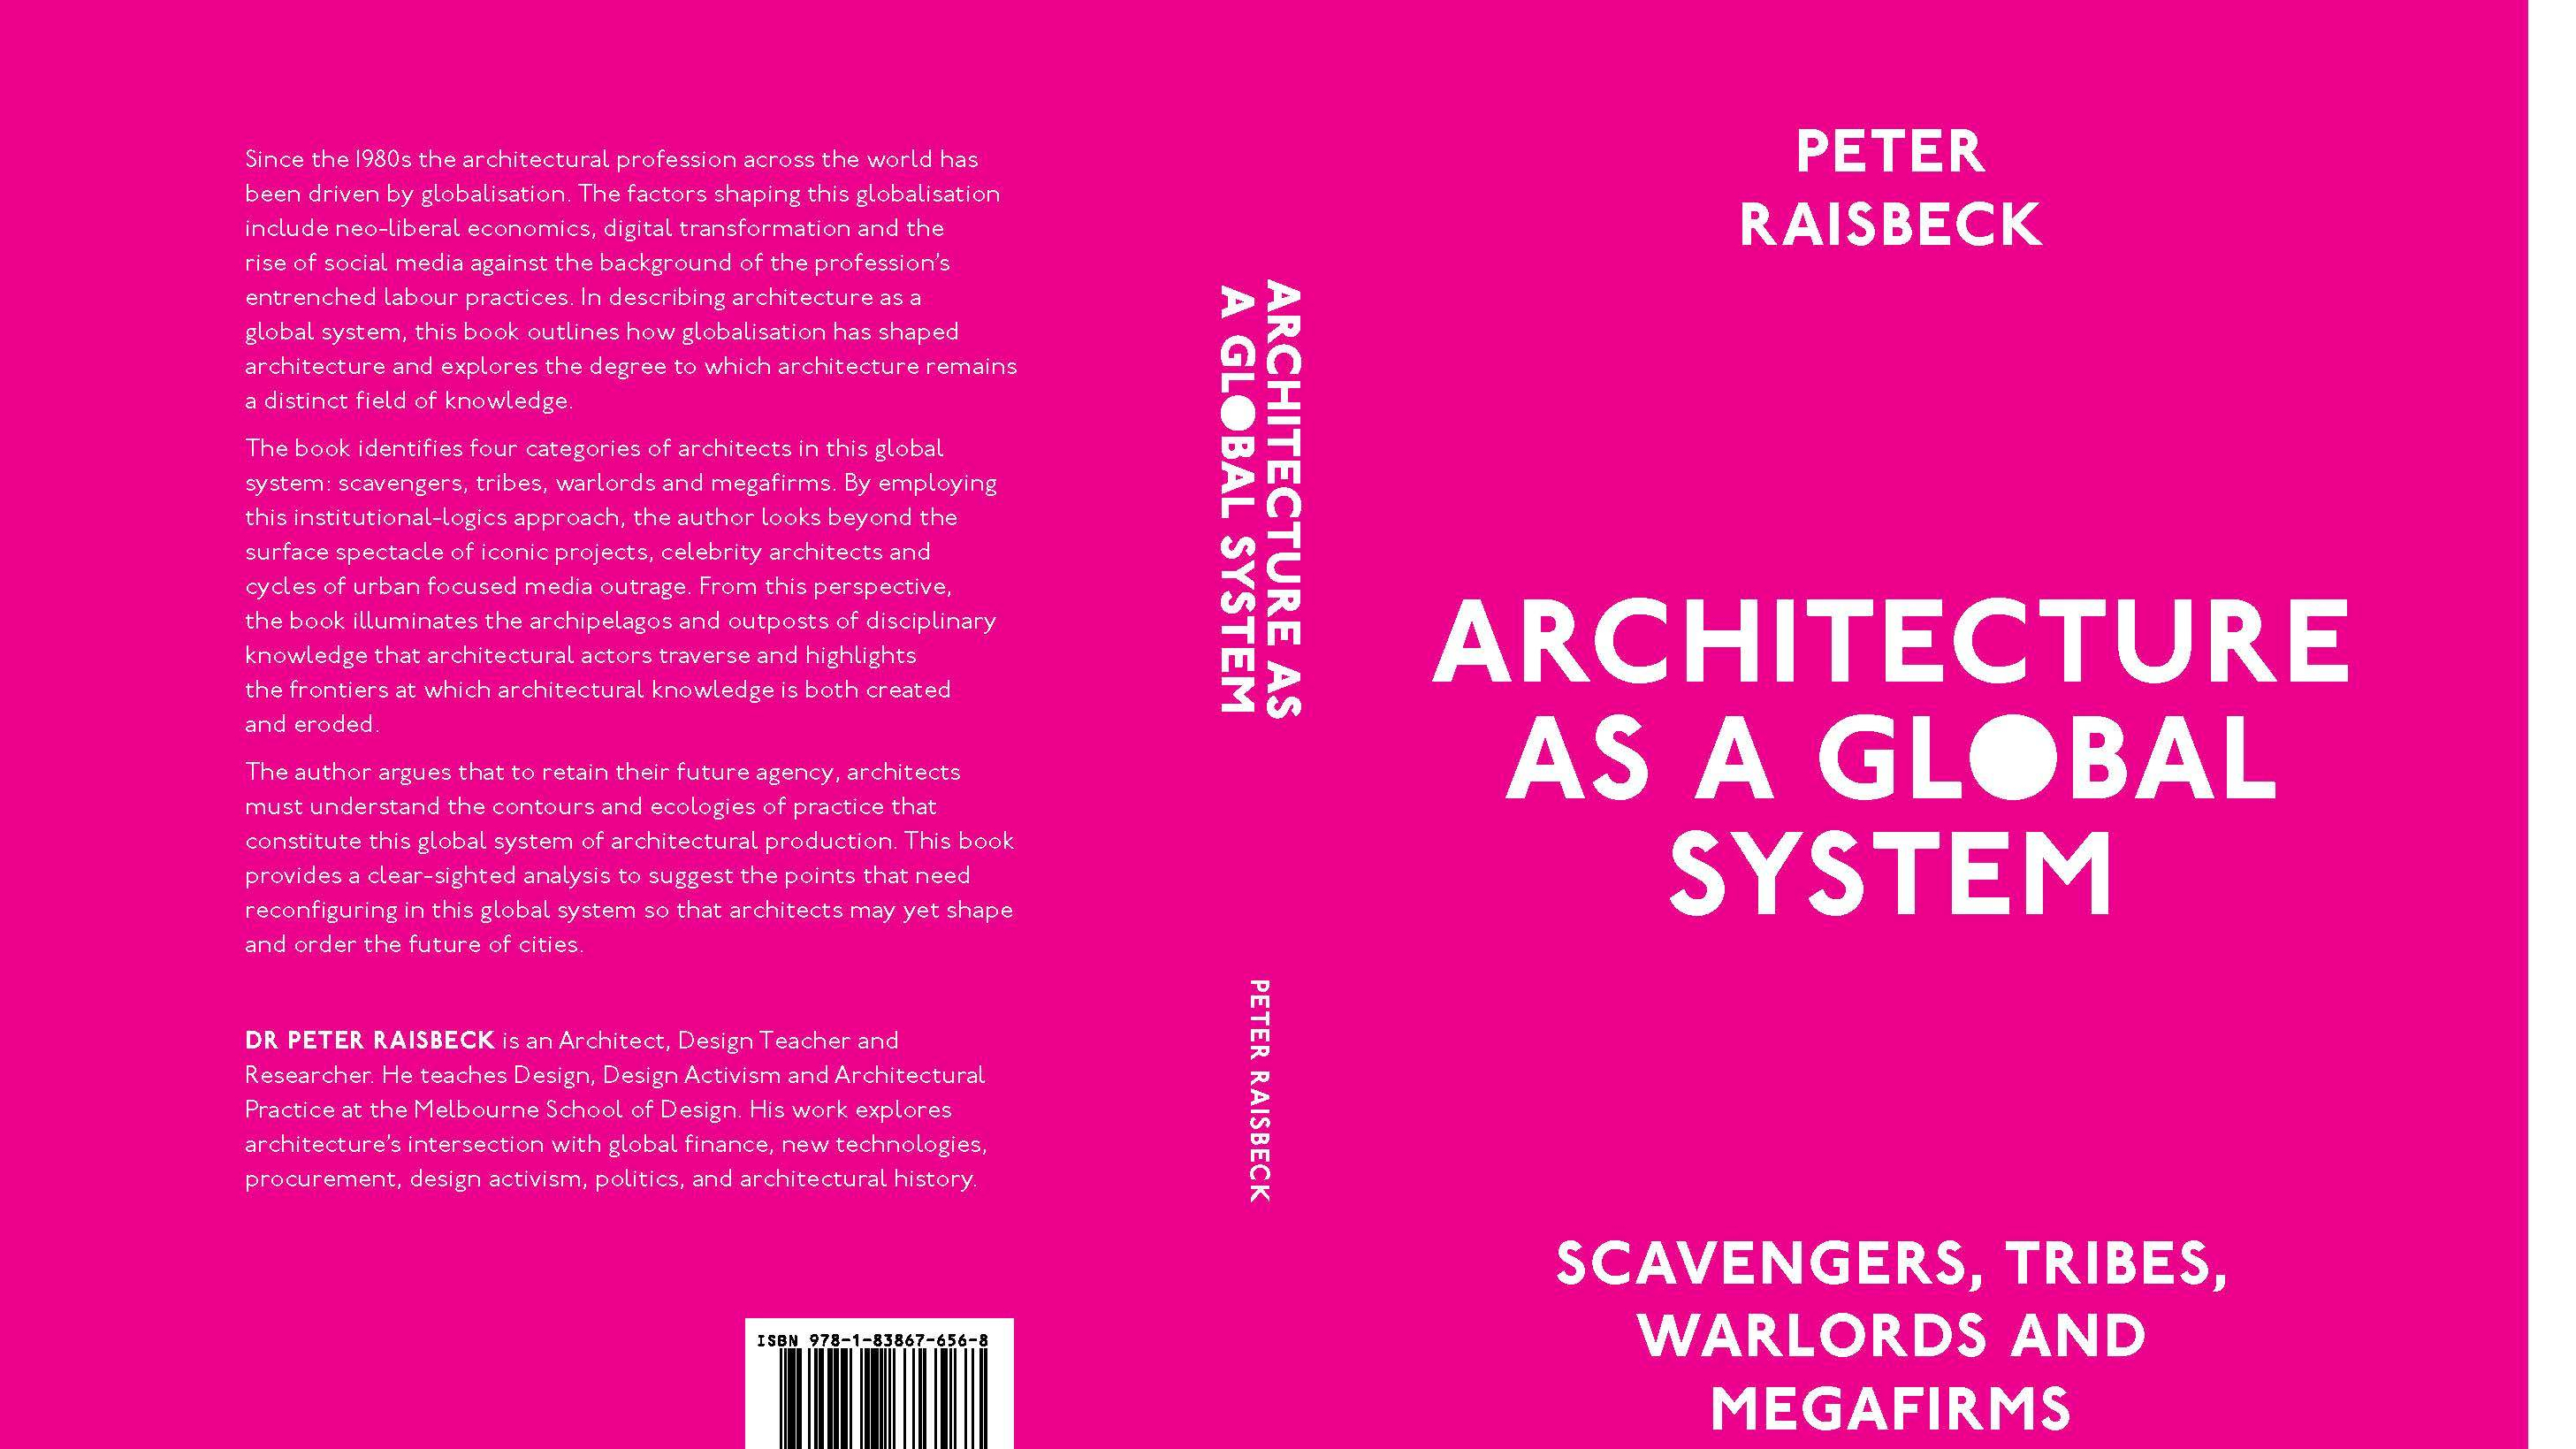 Architecture As a Global System: Scavengers, Tribes, Warlords and Megafirms  - ArchSupply